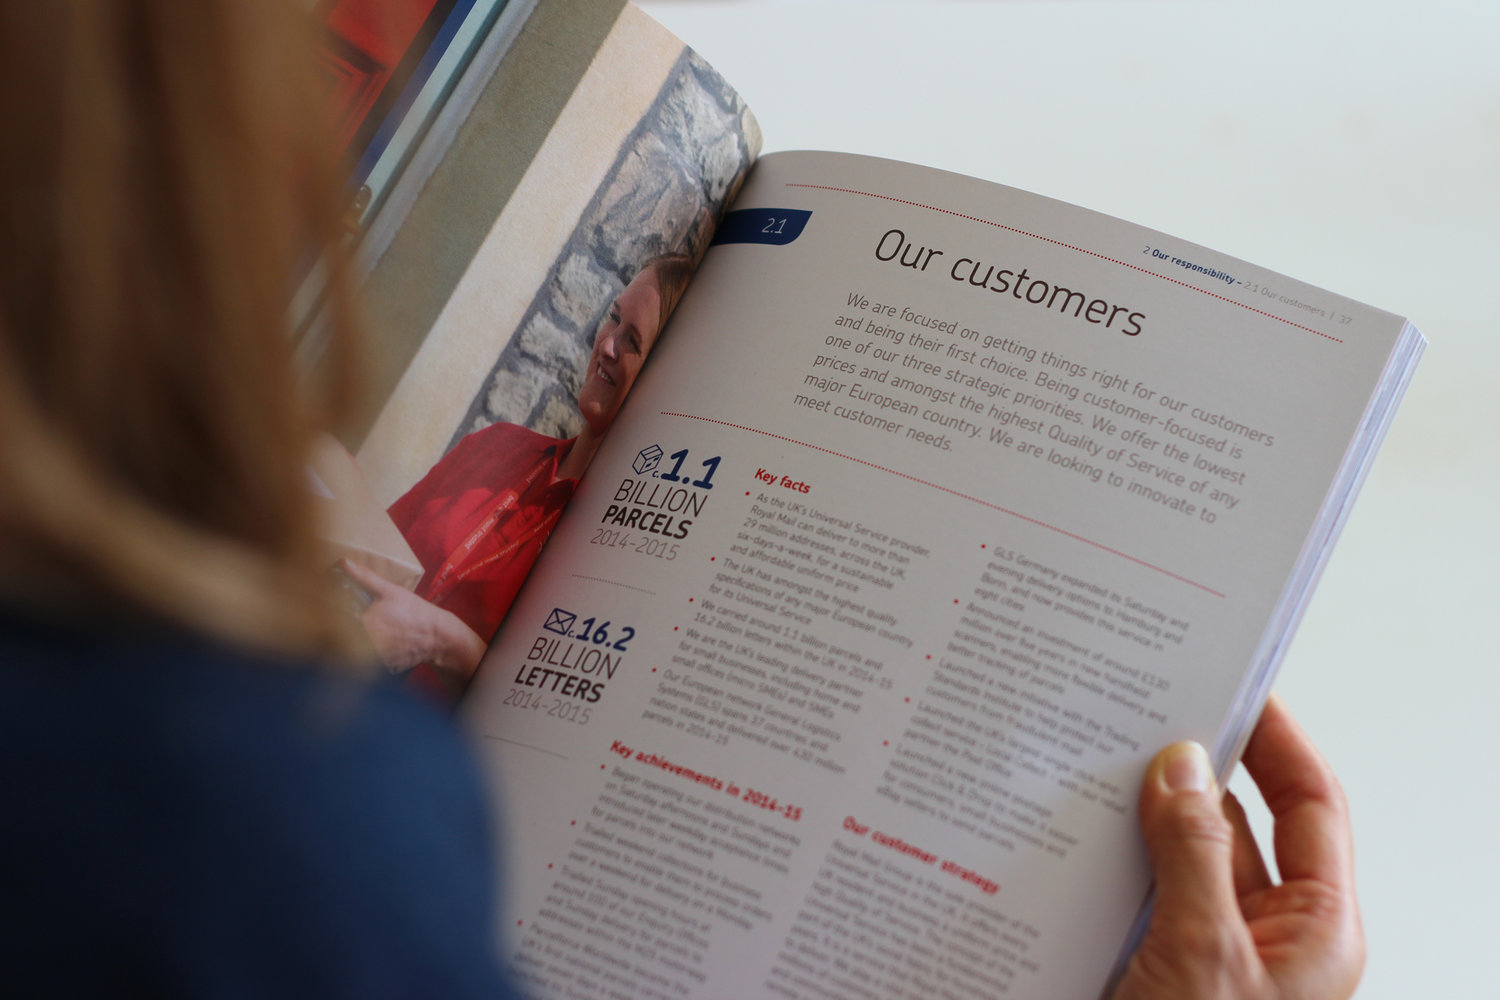 Alan+Clarke-Symonds_Report+designed+at+home_Looking+at+our+people+spread.jpg